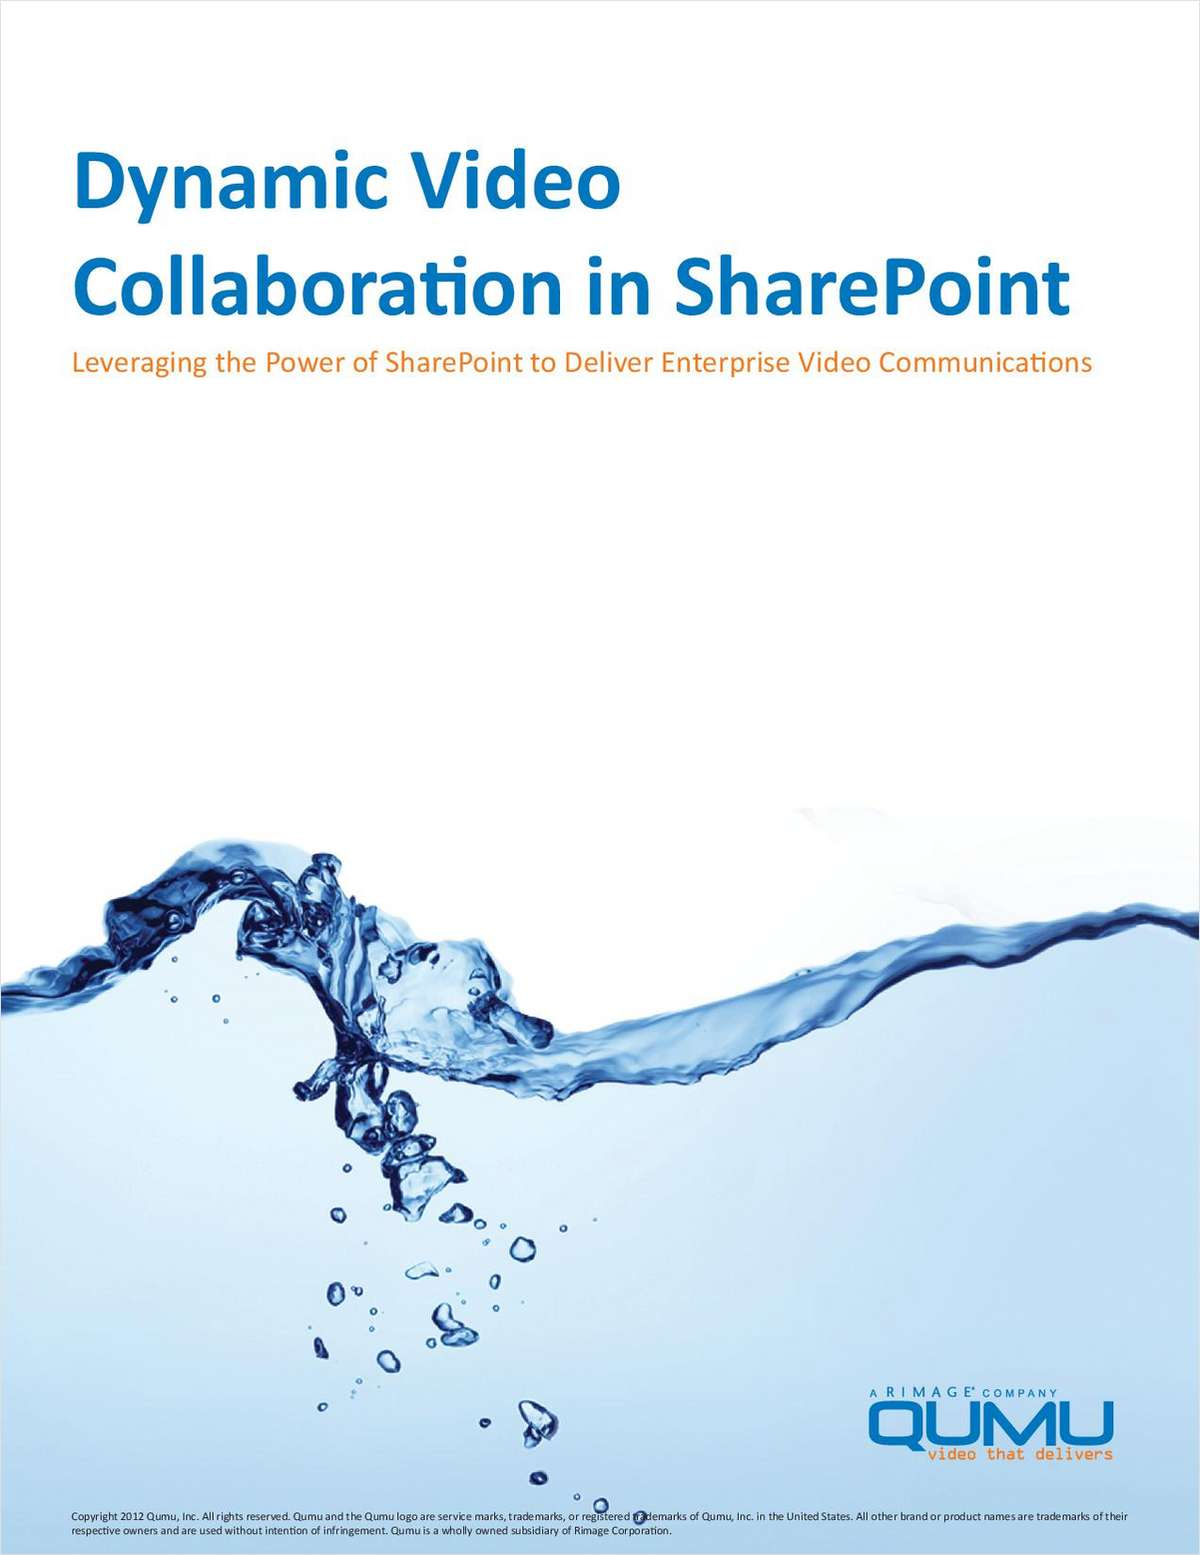 Dynamic Video Collaboration in SharePoint